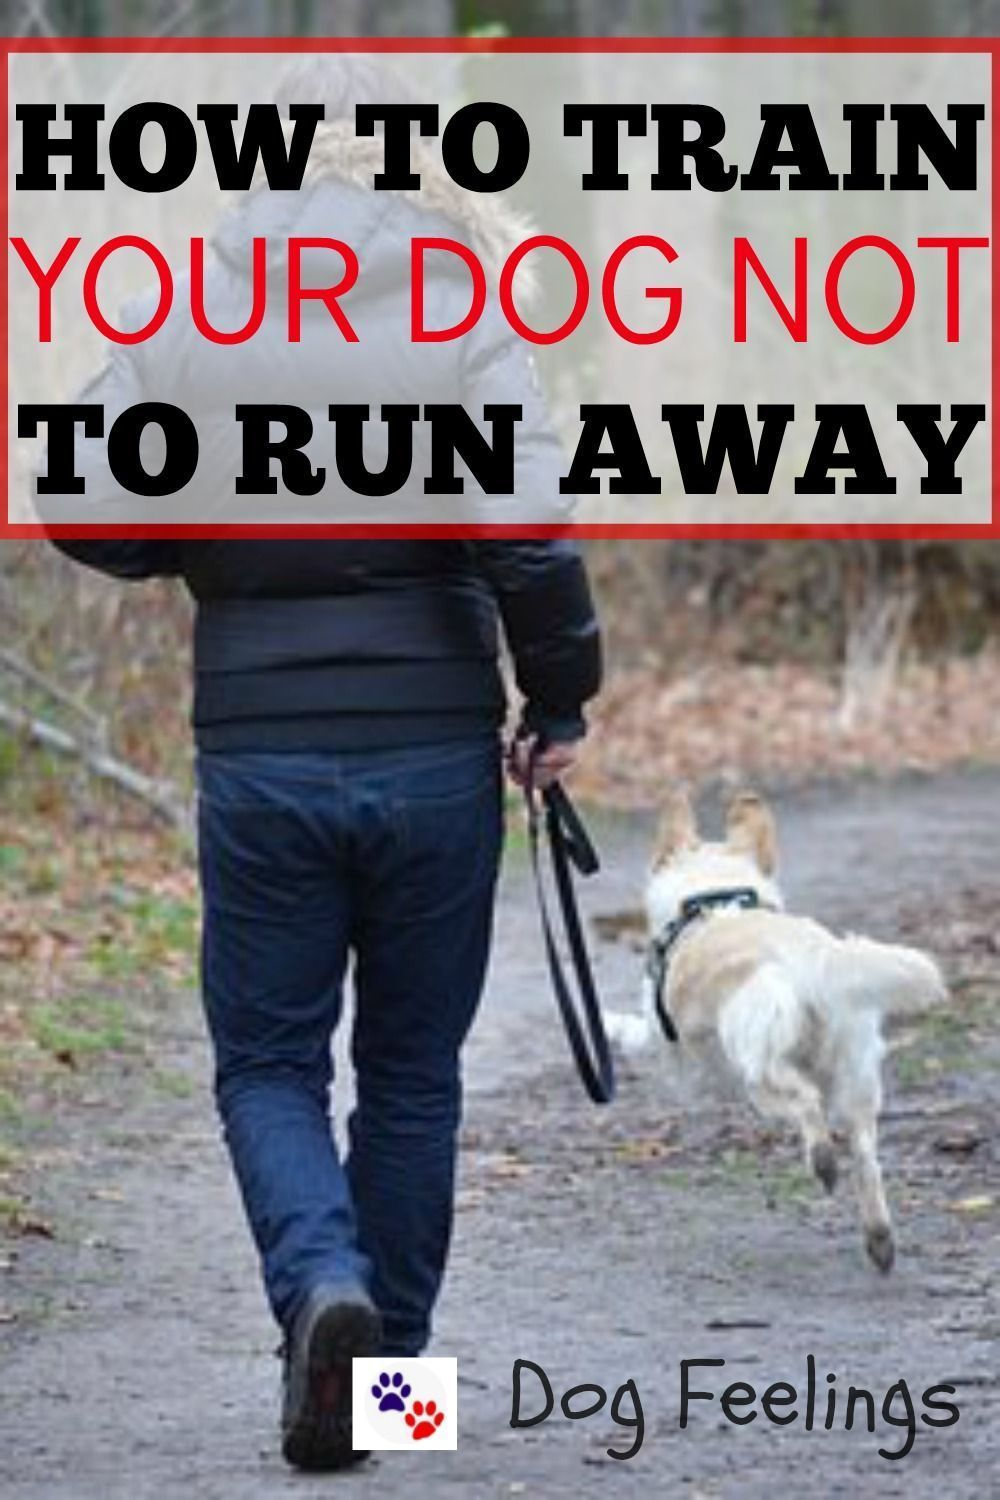 How To Train Your Dog To Not Run Away Https Dogfeelings Com How To Train Your Dog Not To Run Away Training Your Dog Dog Training Obedience Dog Training